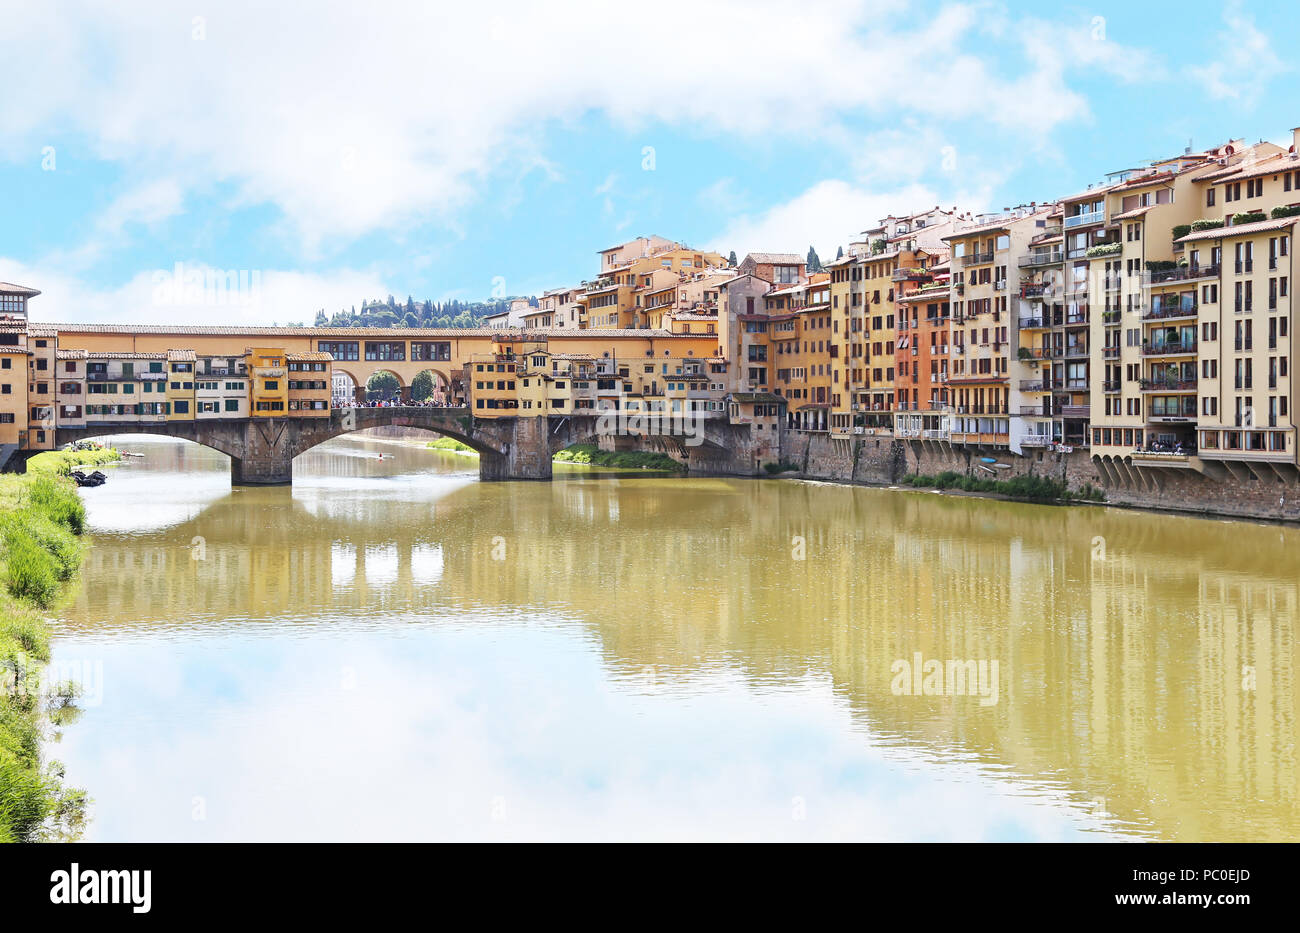 landscape of Arno river and Ponte Vecchio bridge Florence or Firenze city Italy - Stock Image